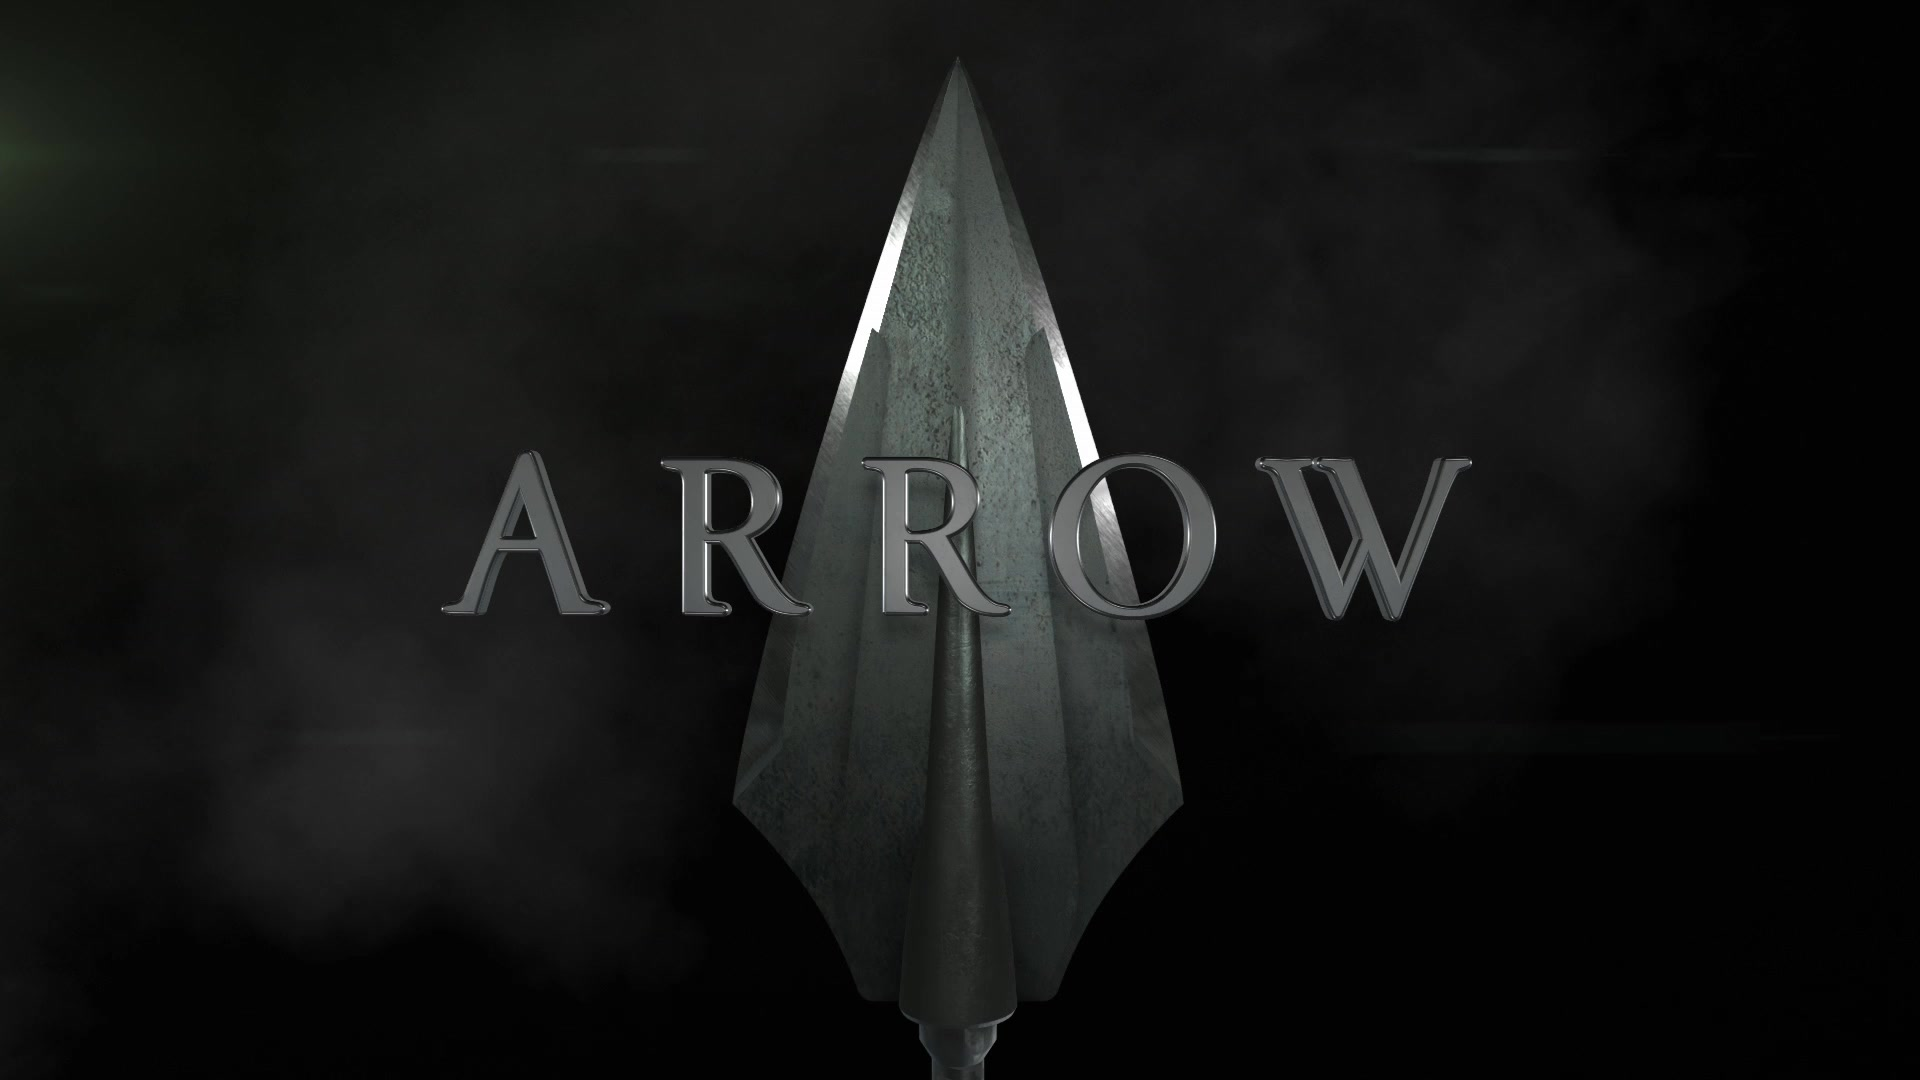 Arrow (TV Series) Episode: You Have Saved This City